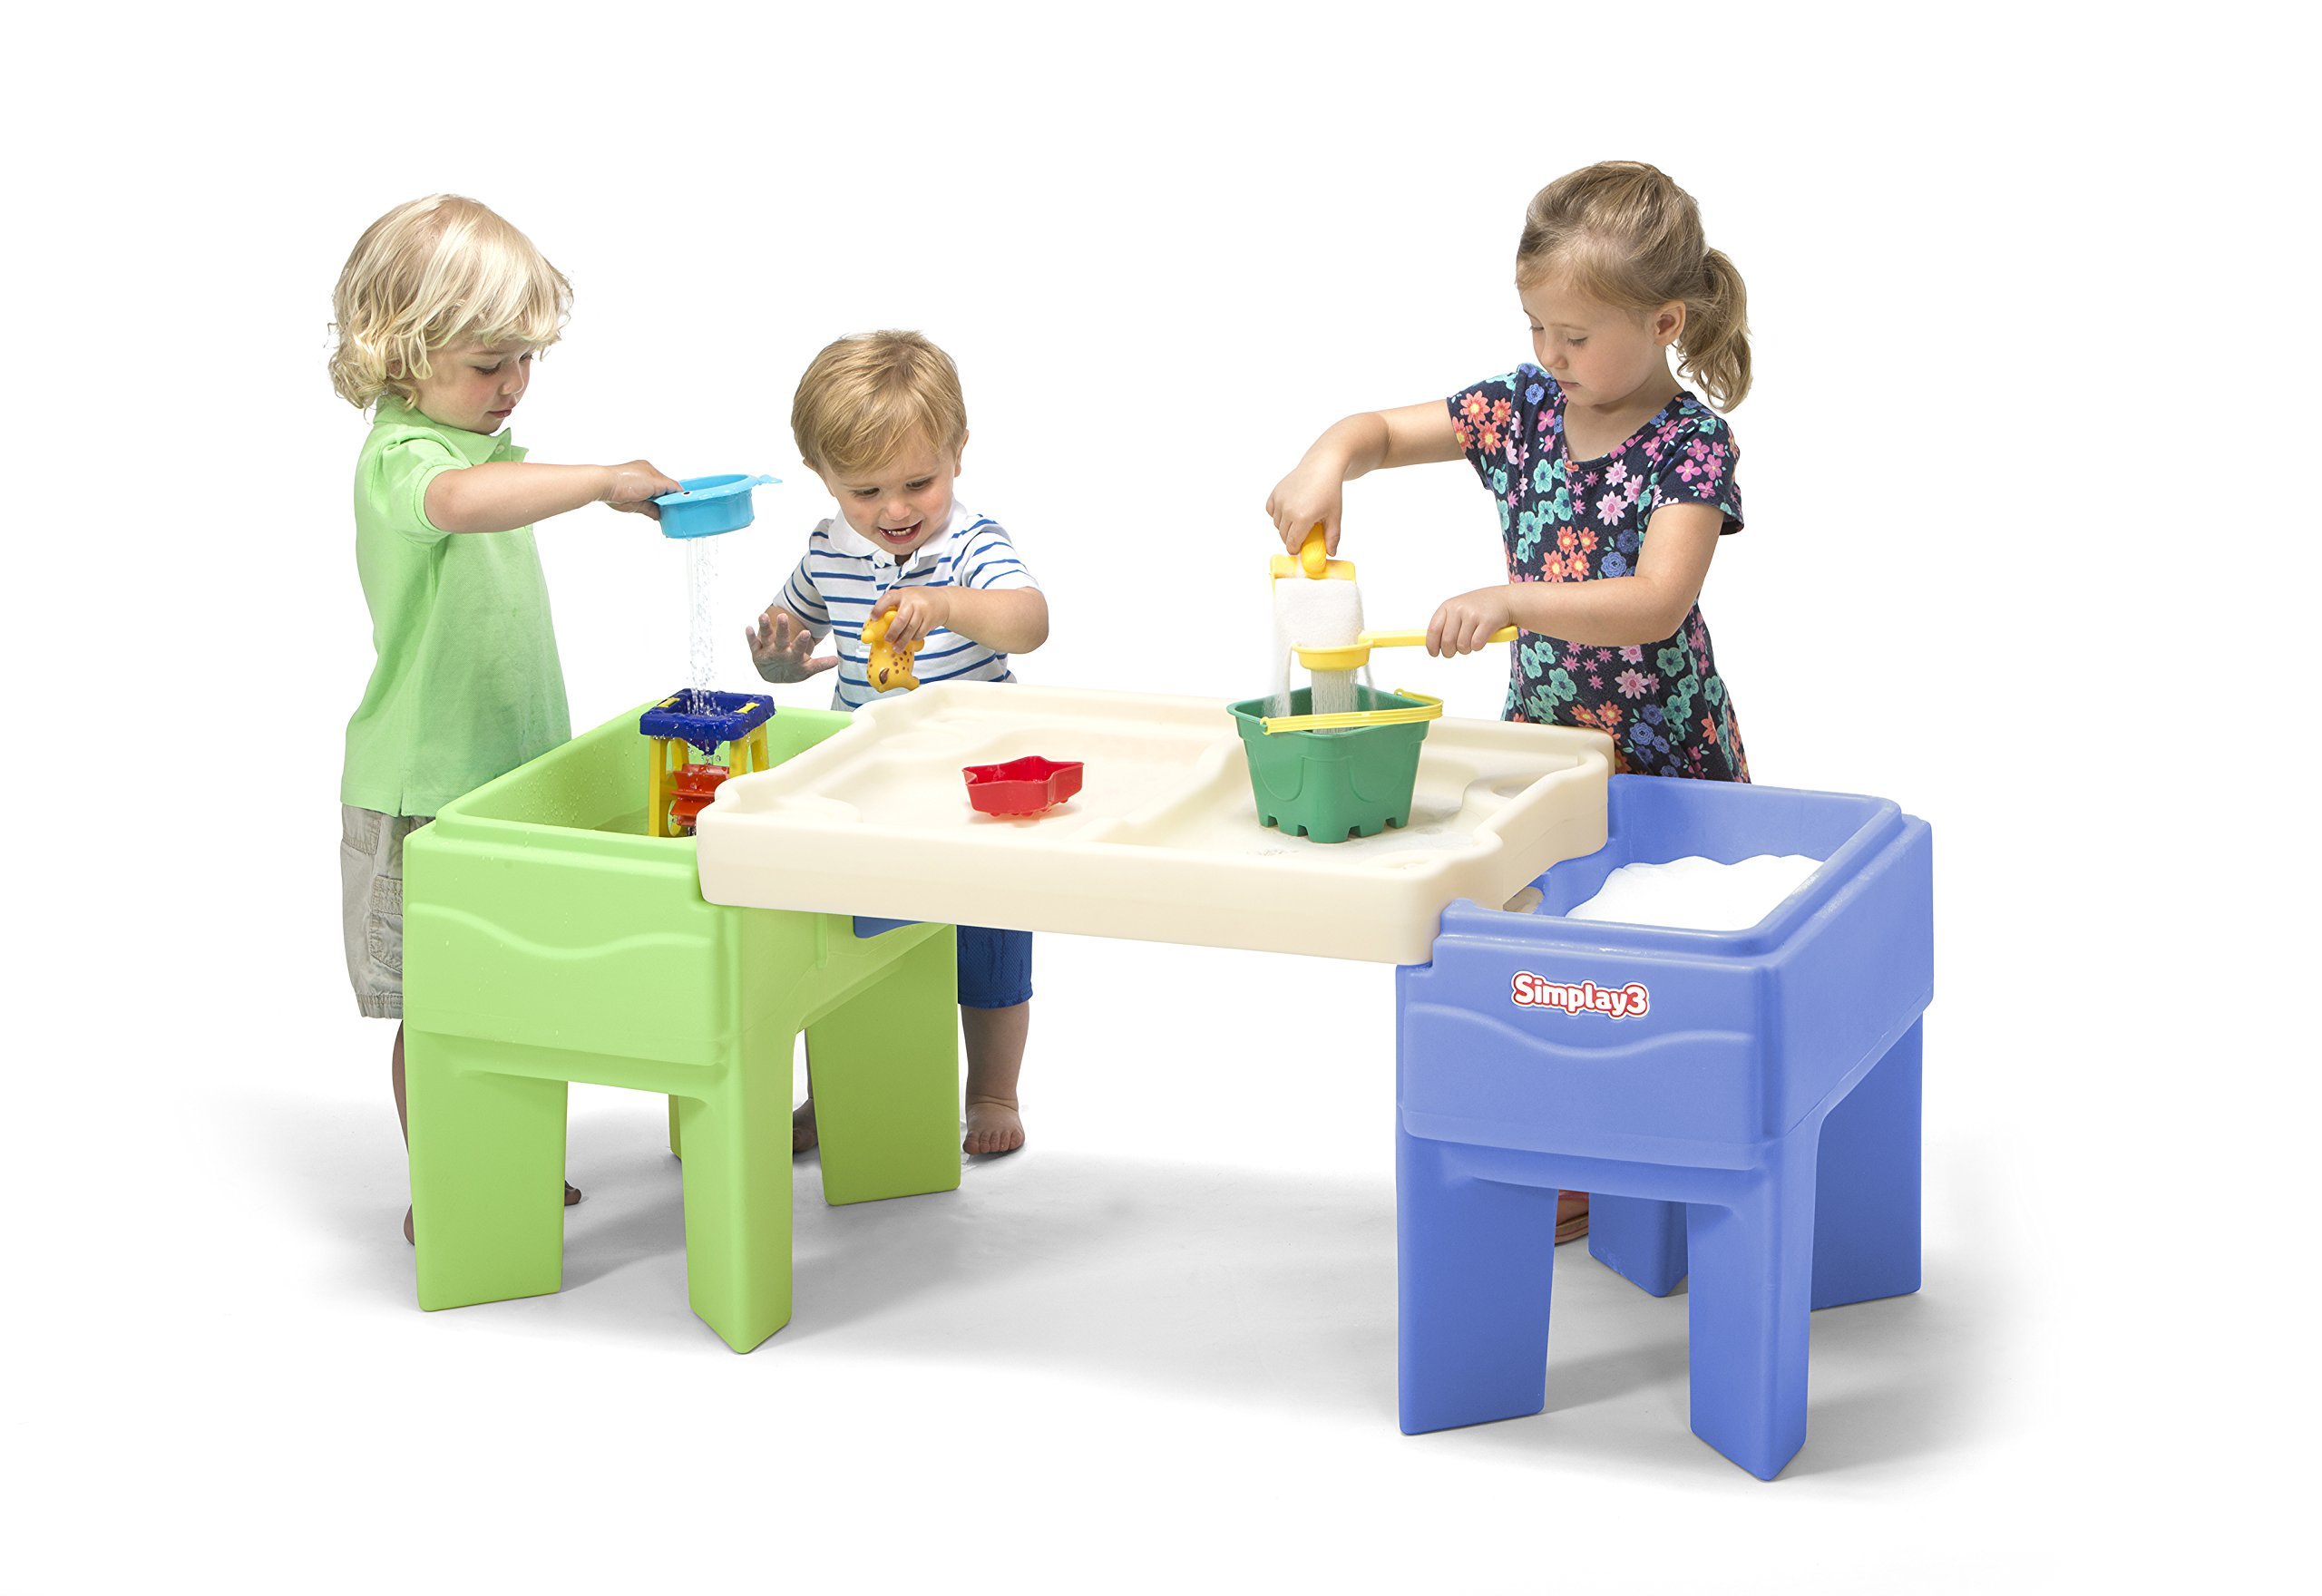 Simplay3 Indoor Outdoor Sand and Water Activity Table with Storage